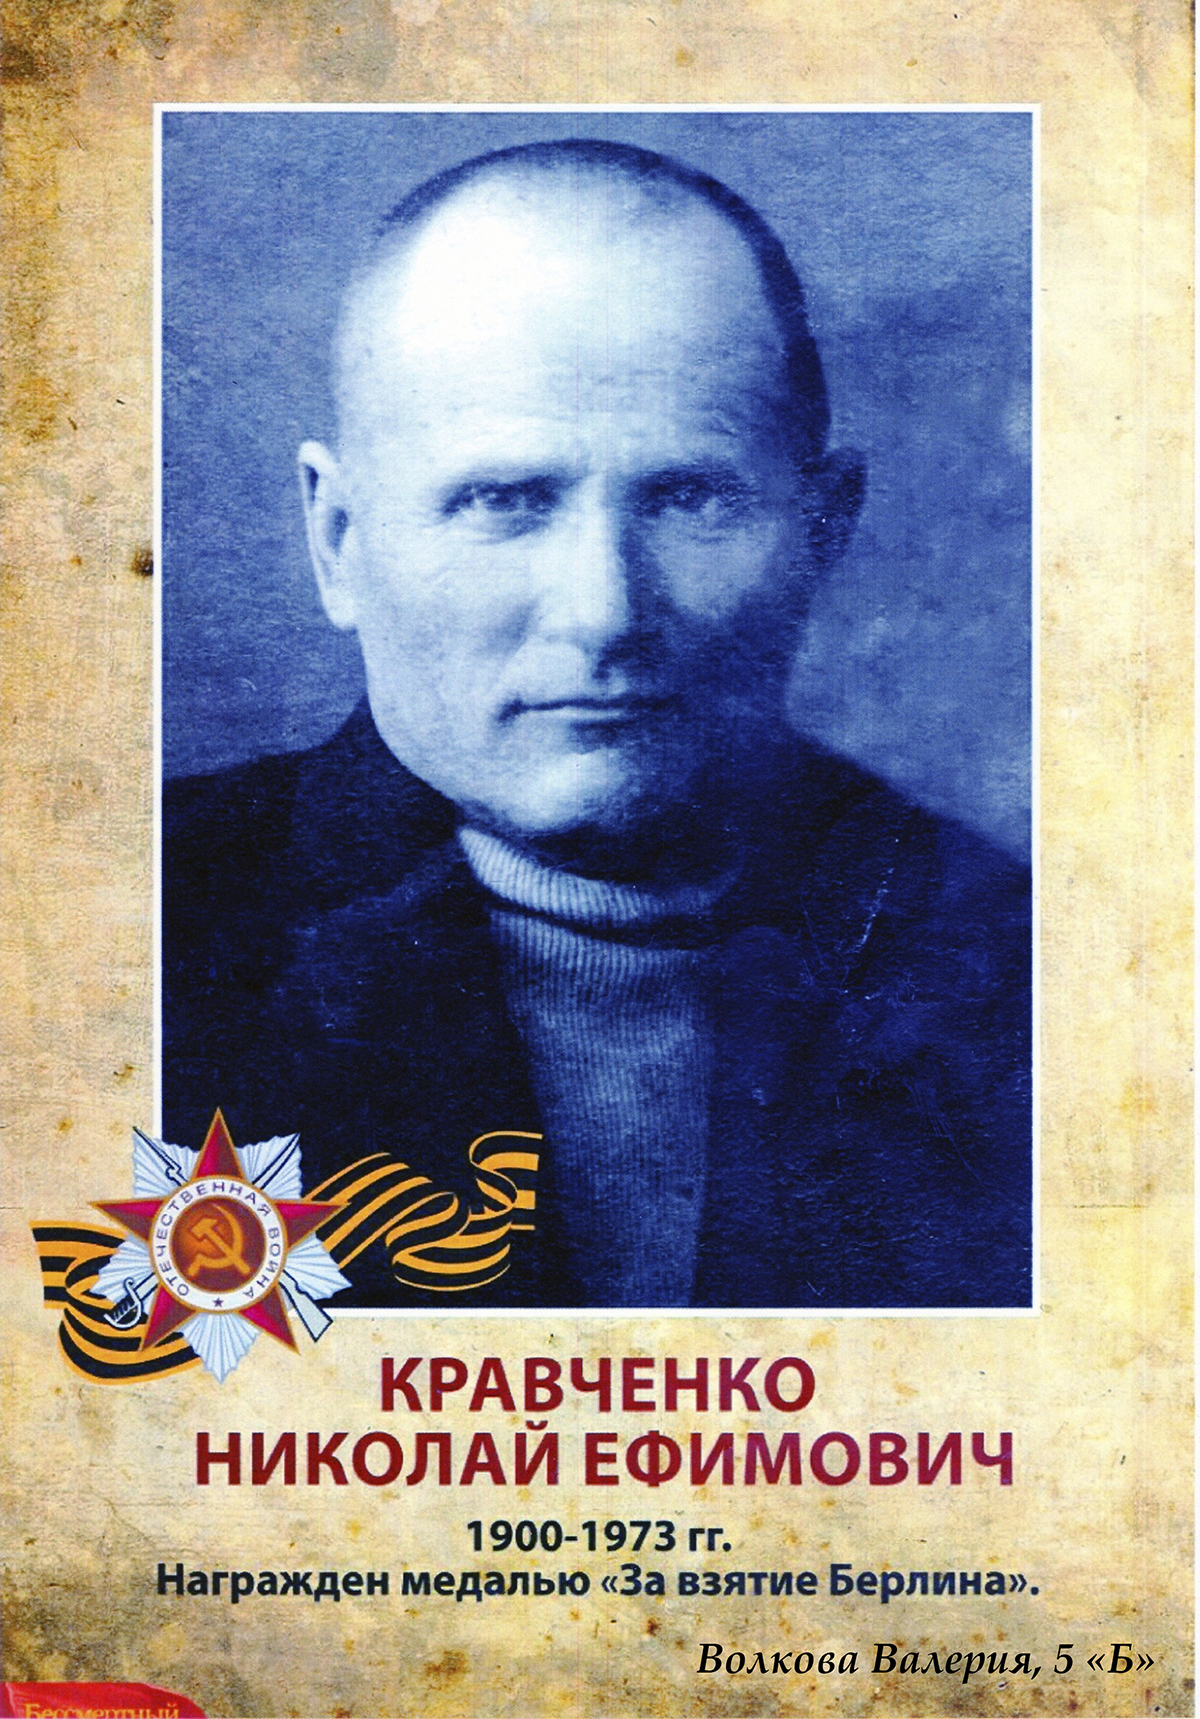 Кравченко Н.Е.1